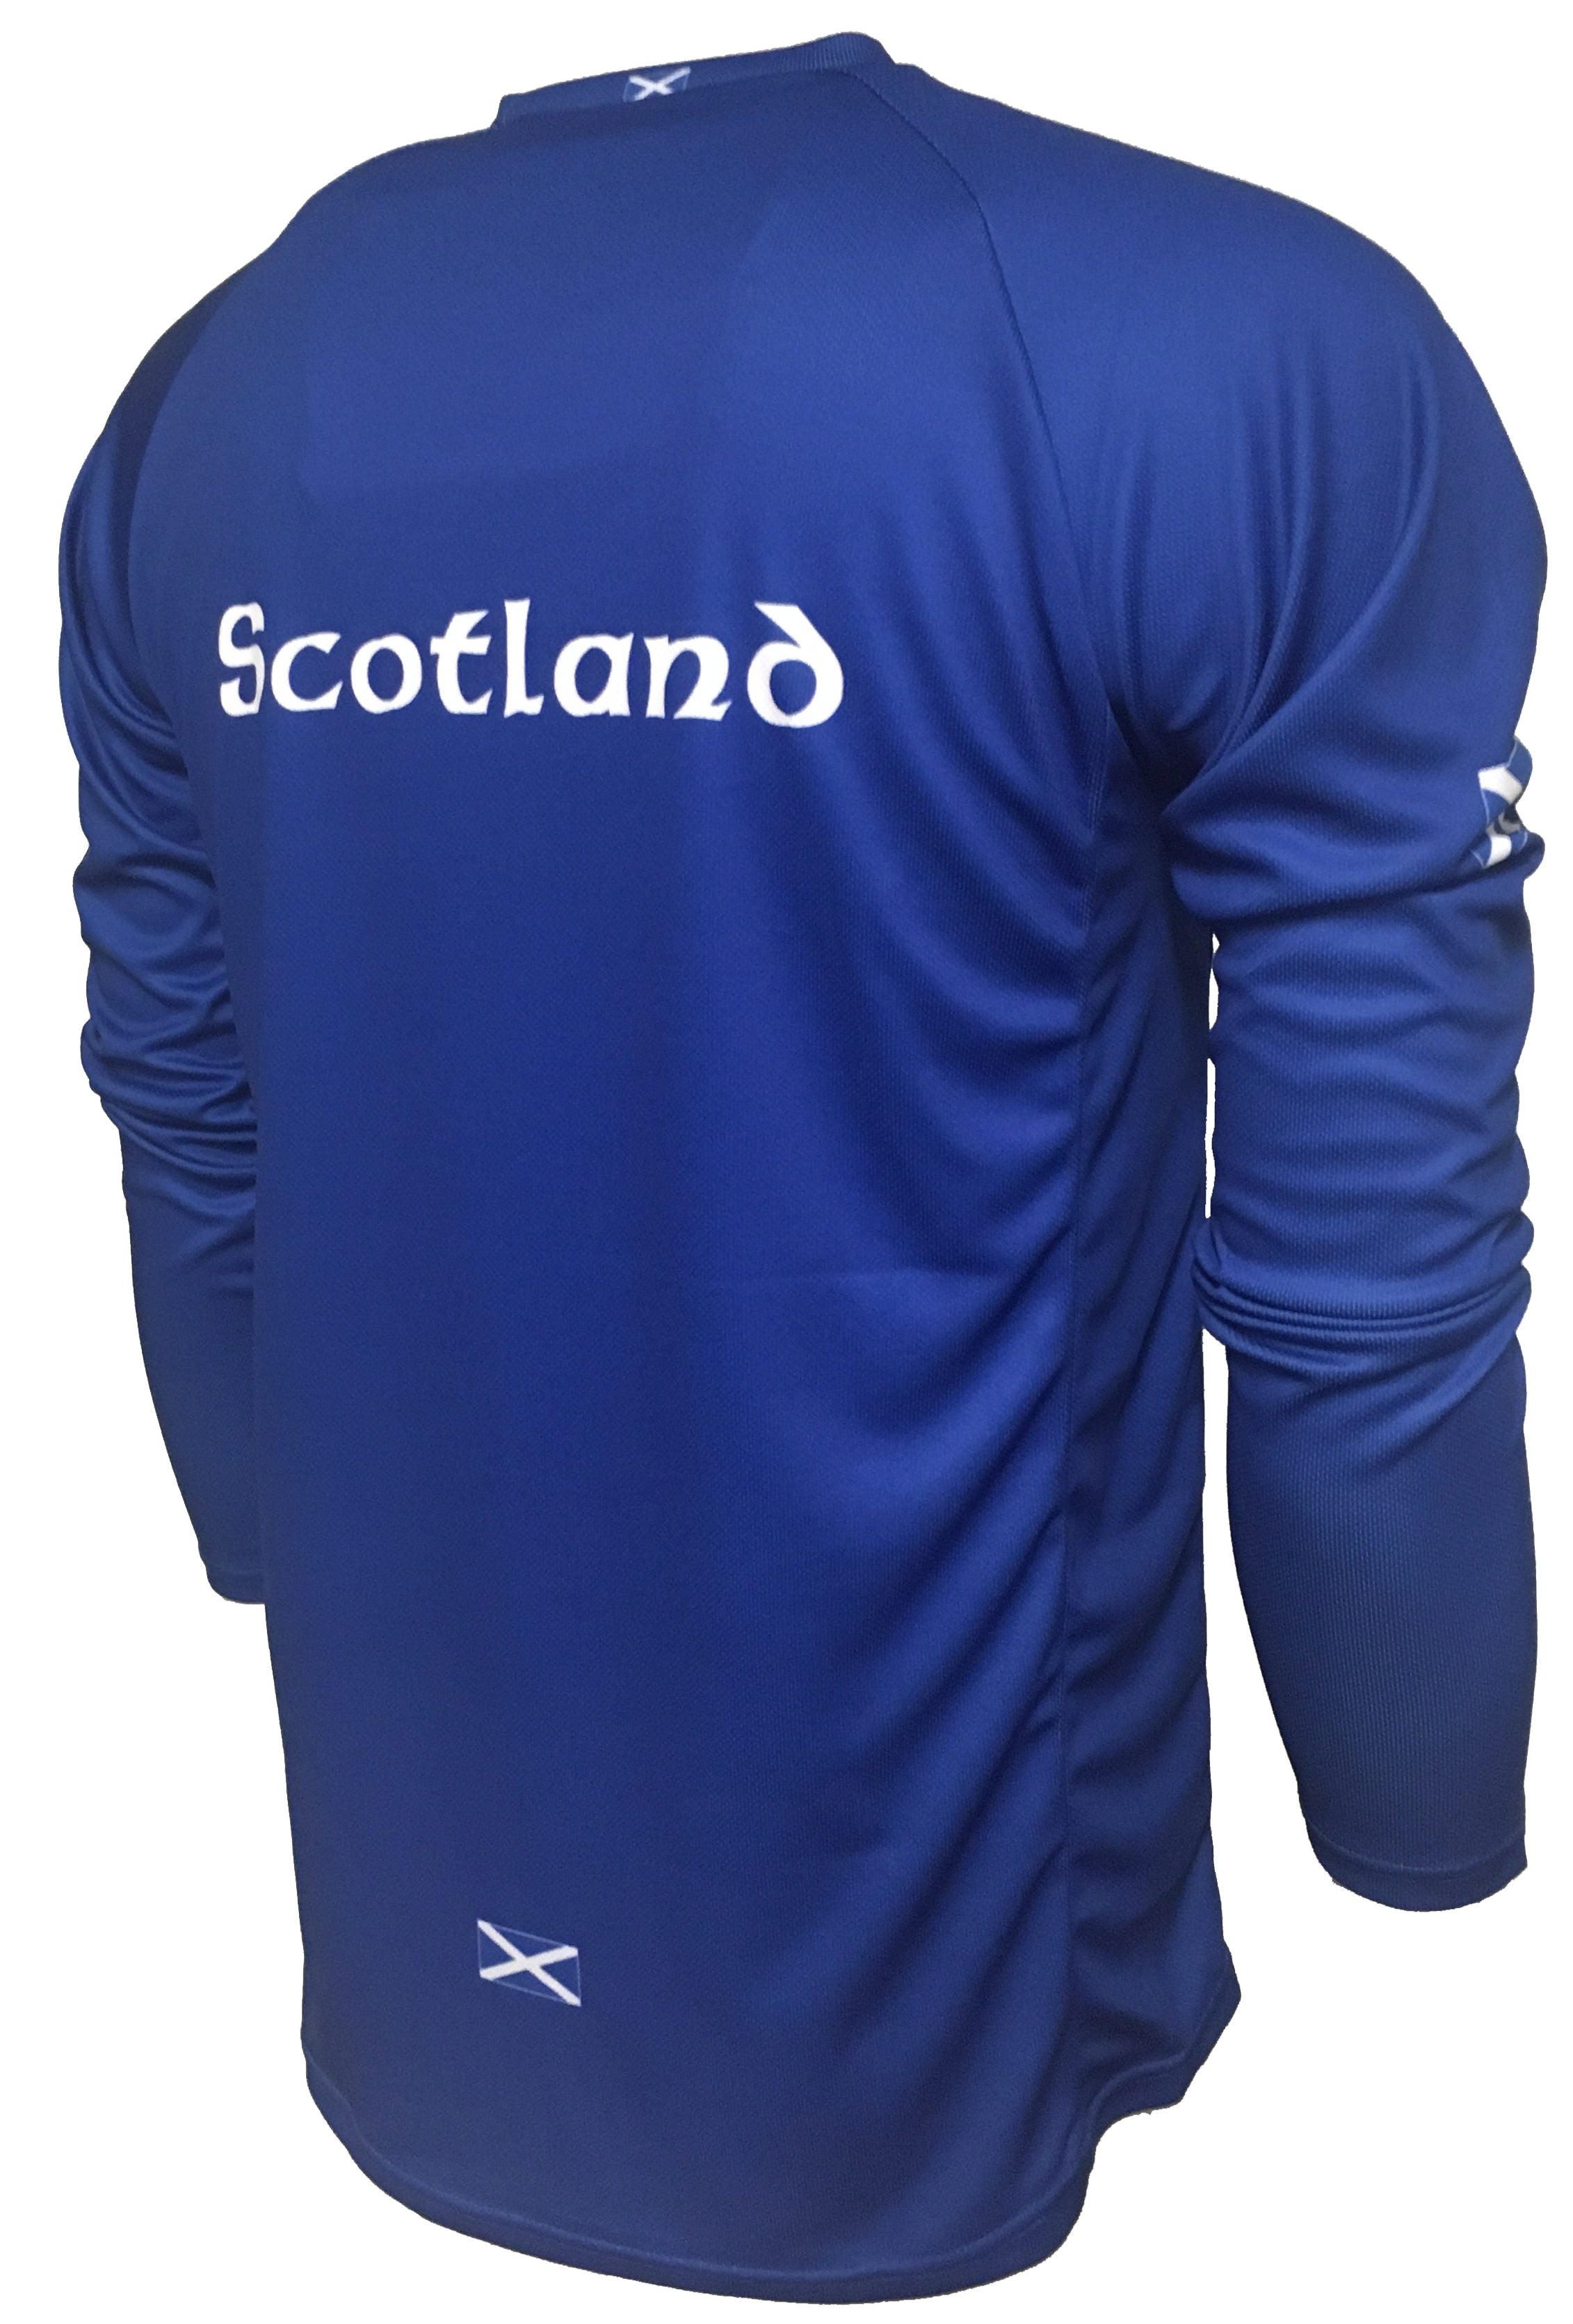 Scotland Enduro Jersey Back